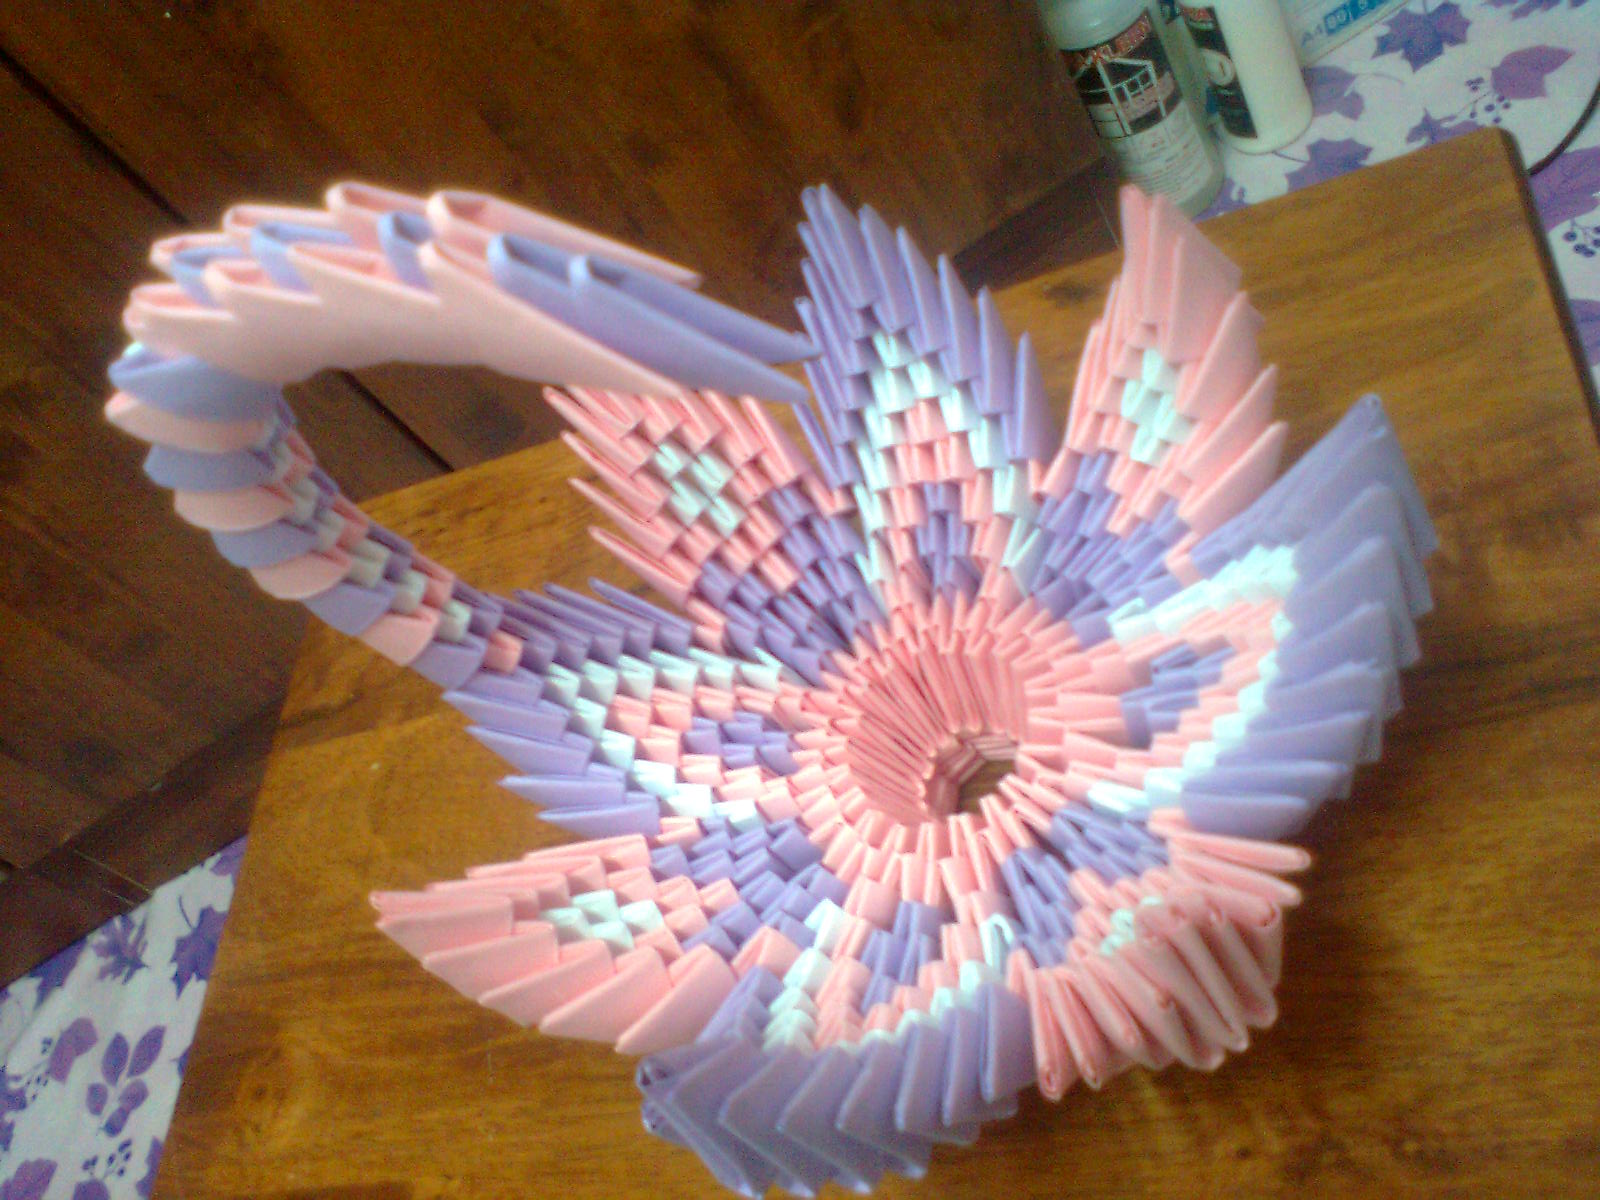 Swan Basic Form Turned Into A Flower Basket For Other Uses